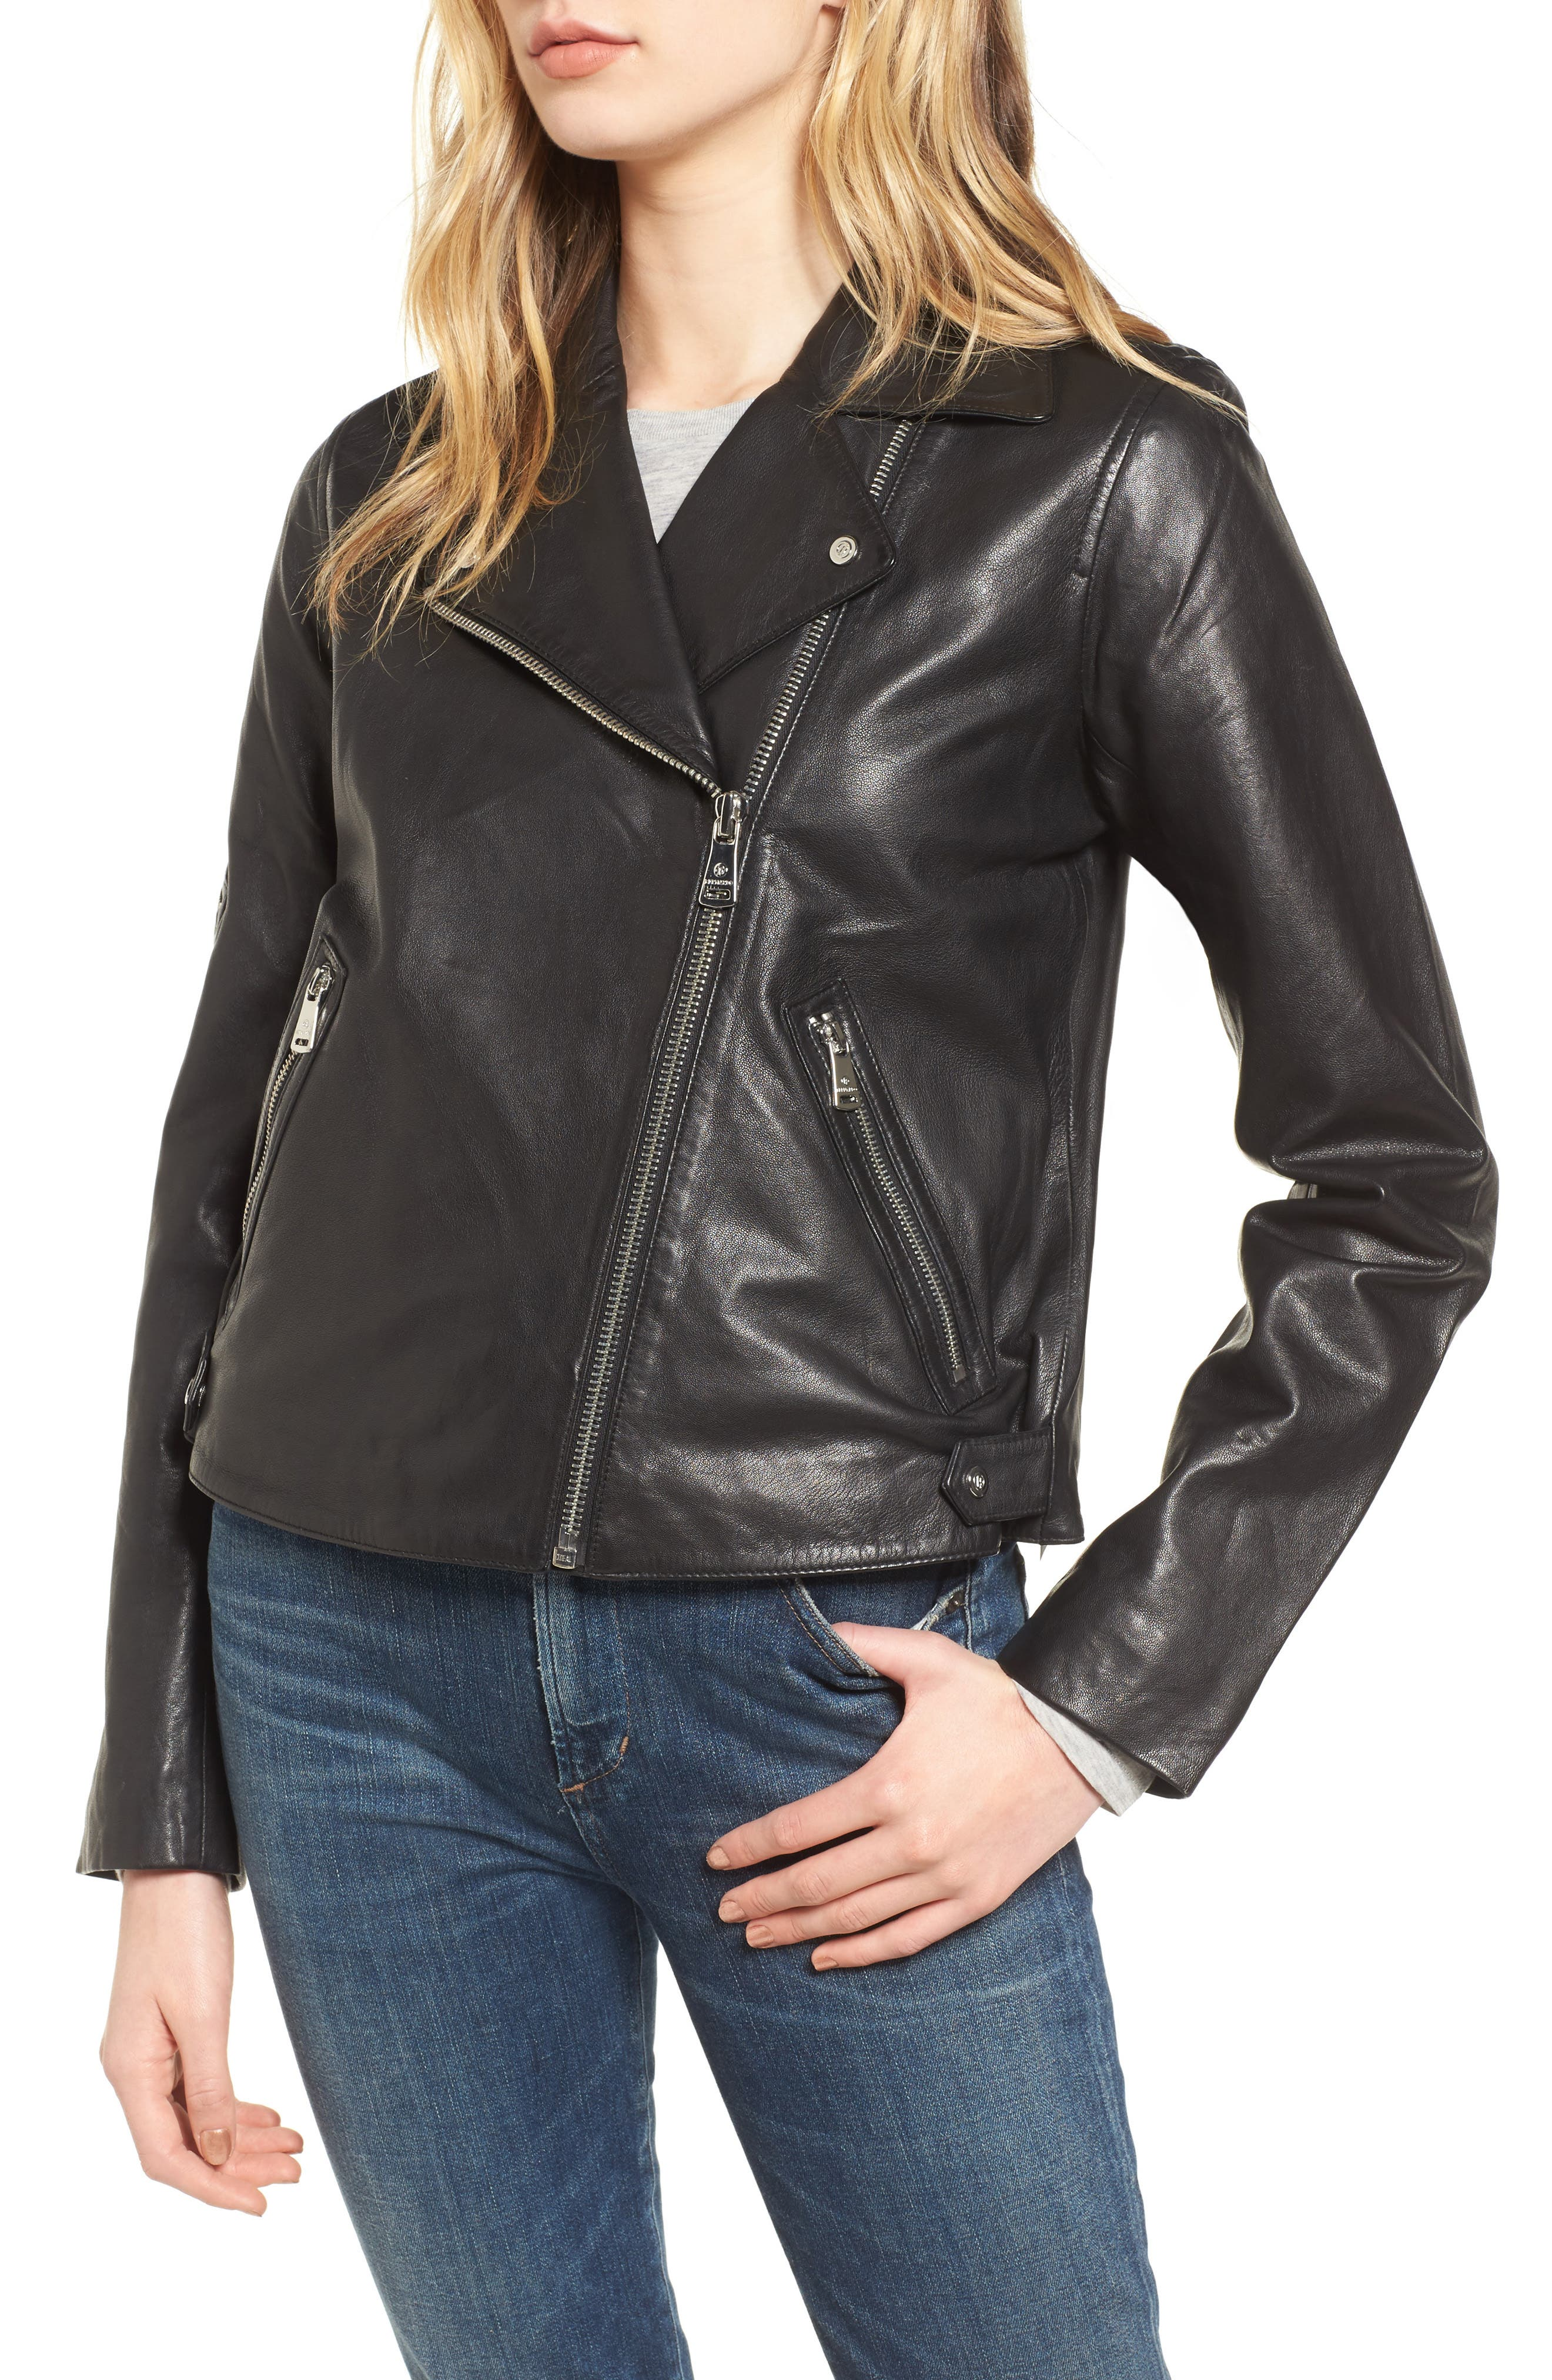 Kirwin Leather Moto Jacket,                             Alternate thumbnail 4, color,                             Black